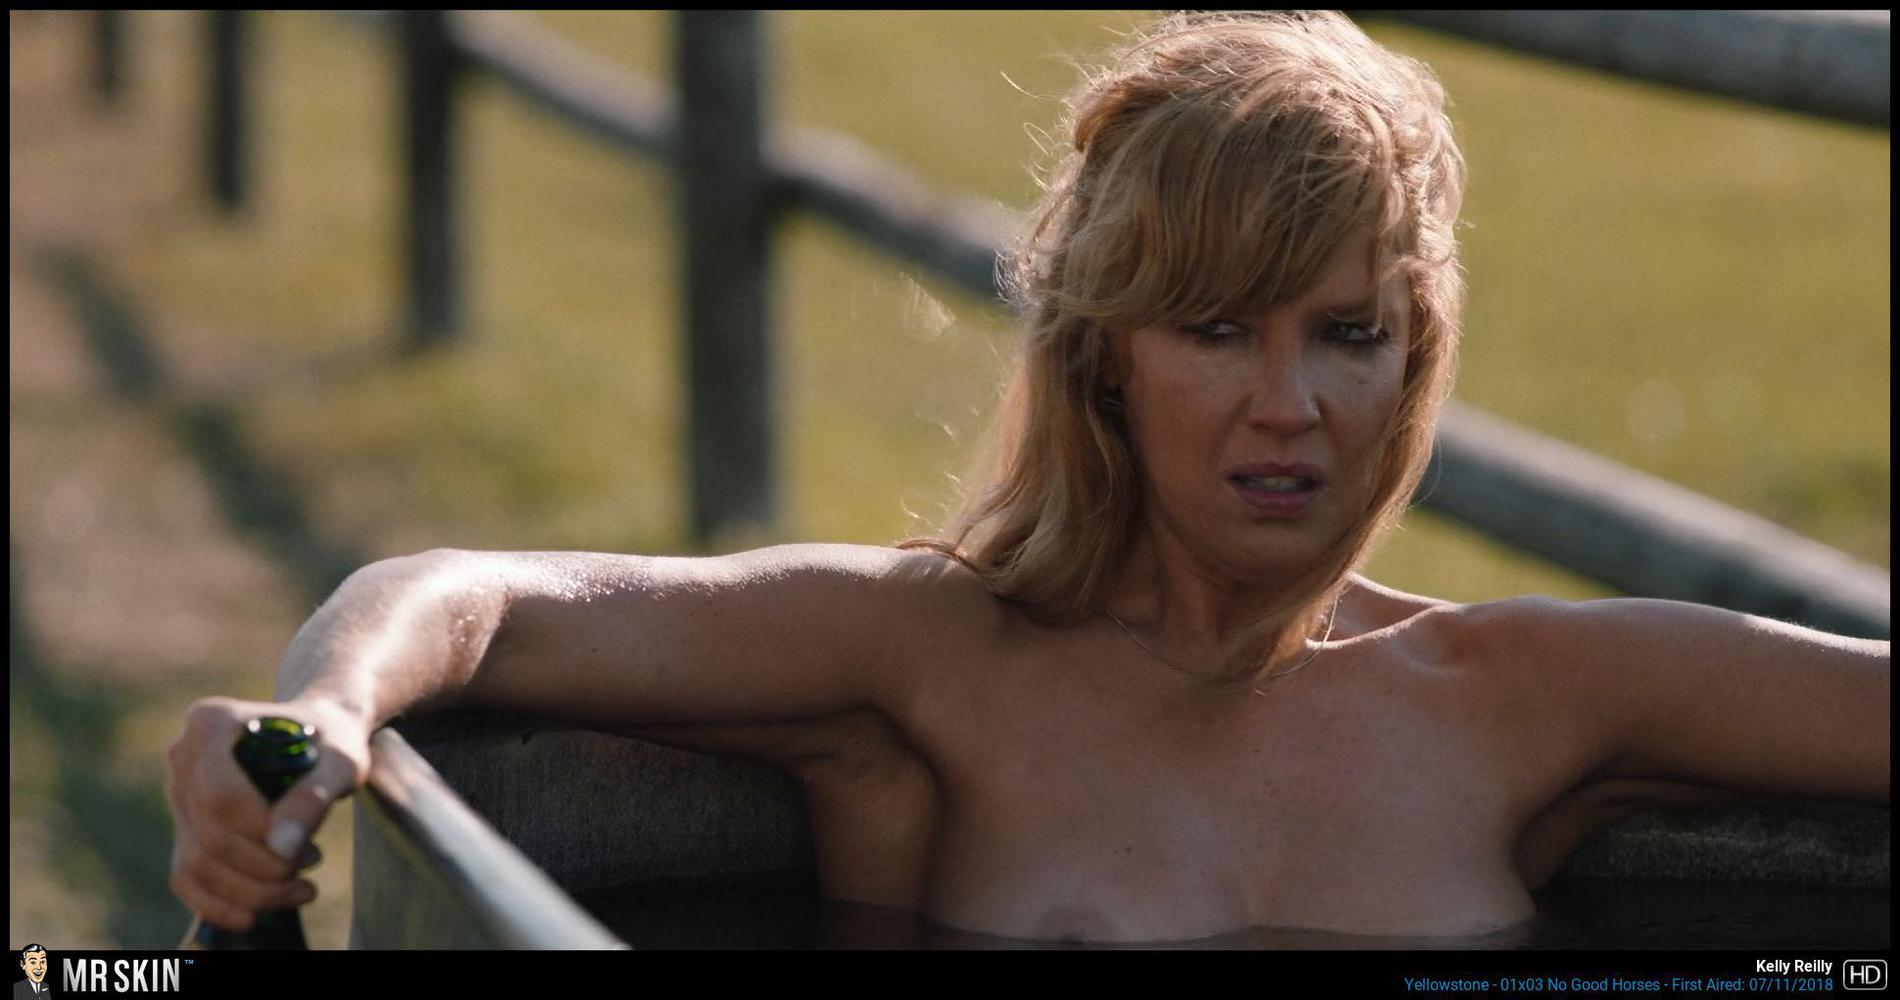 Tv Nudity Report Yellowstone, Power, The Affair 71618-4186